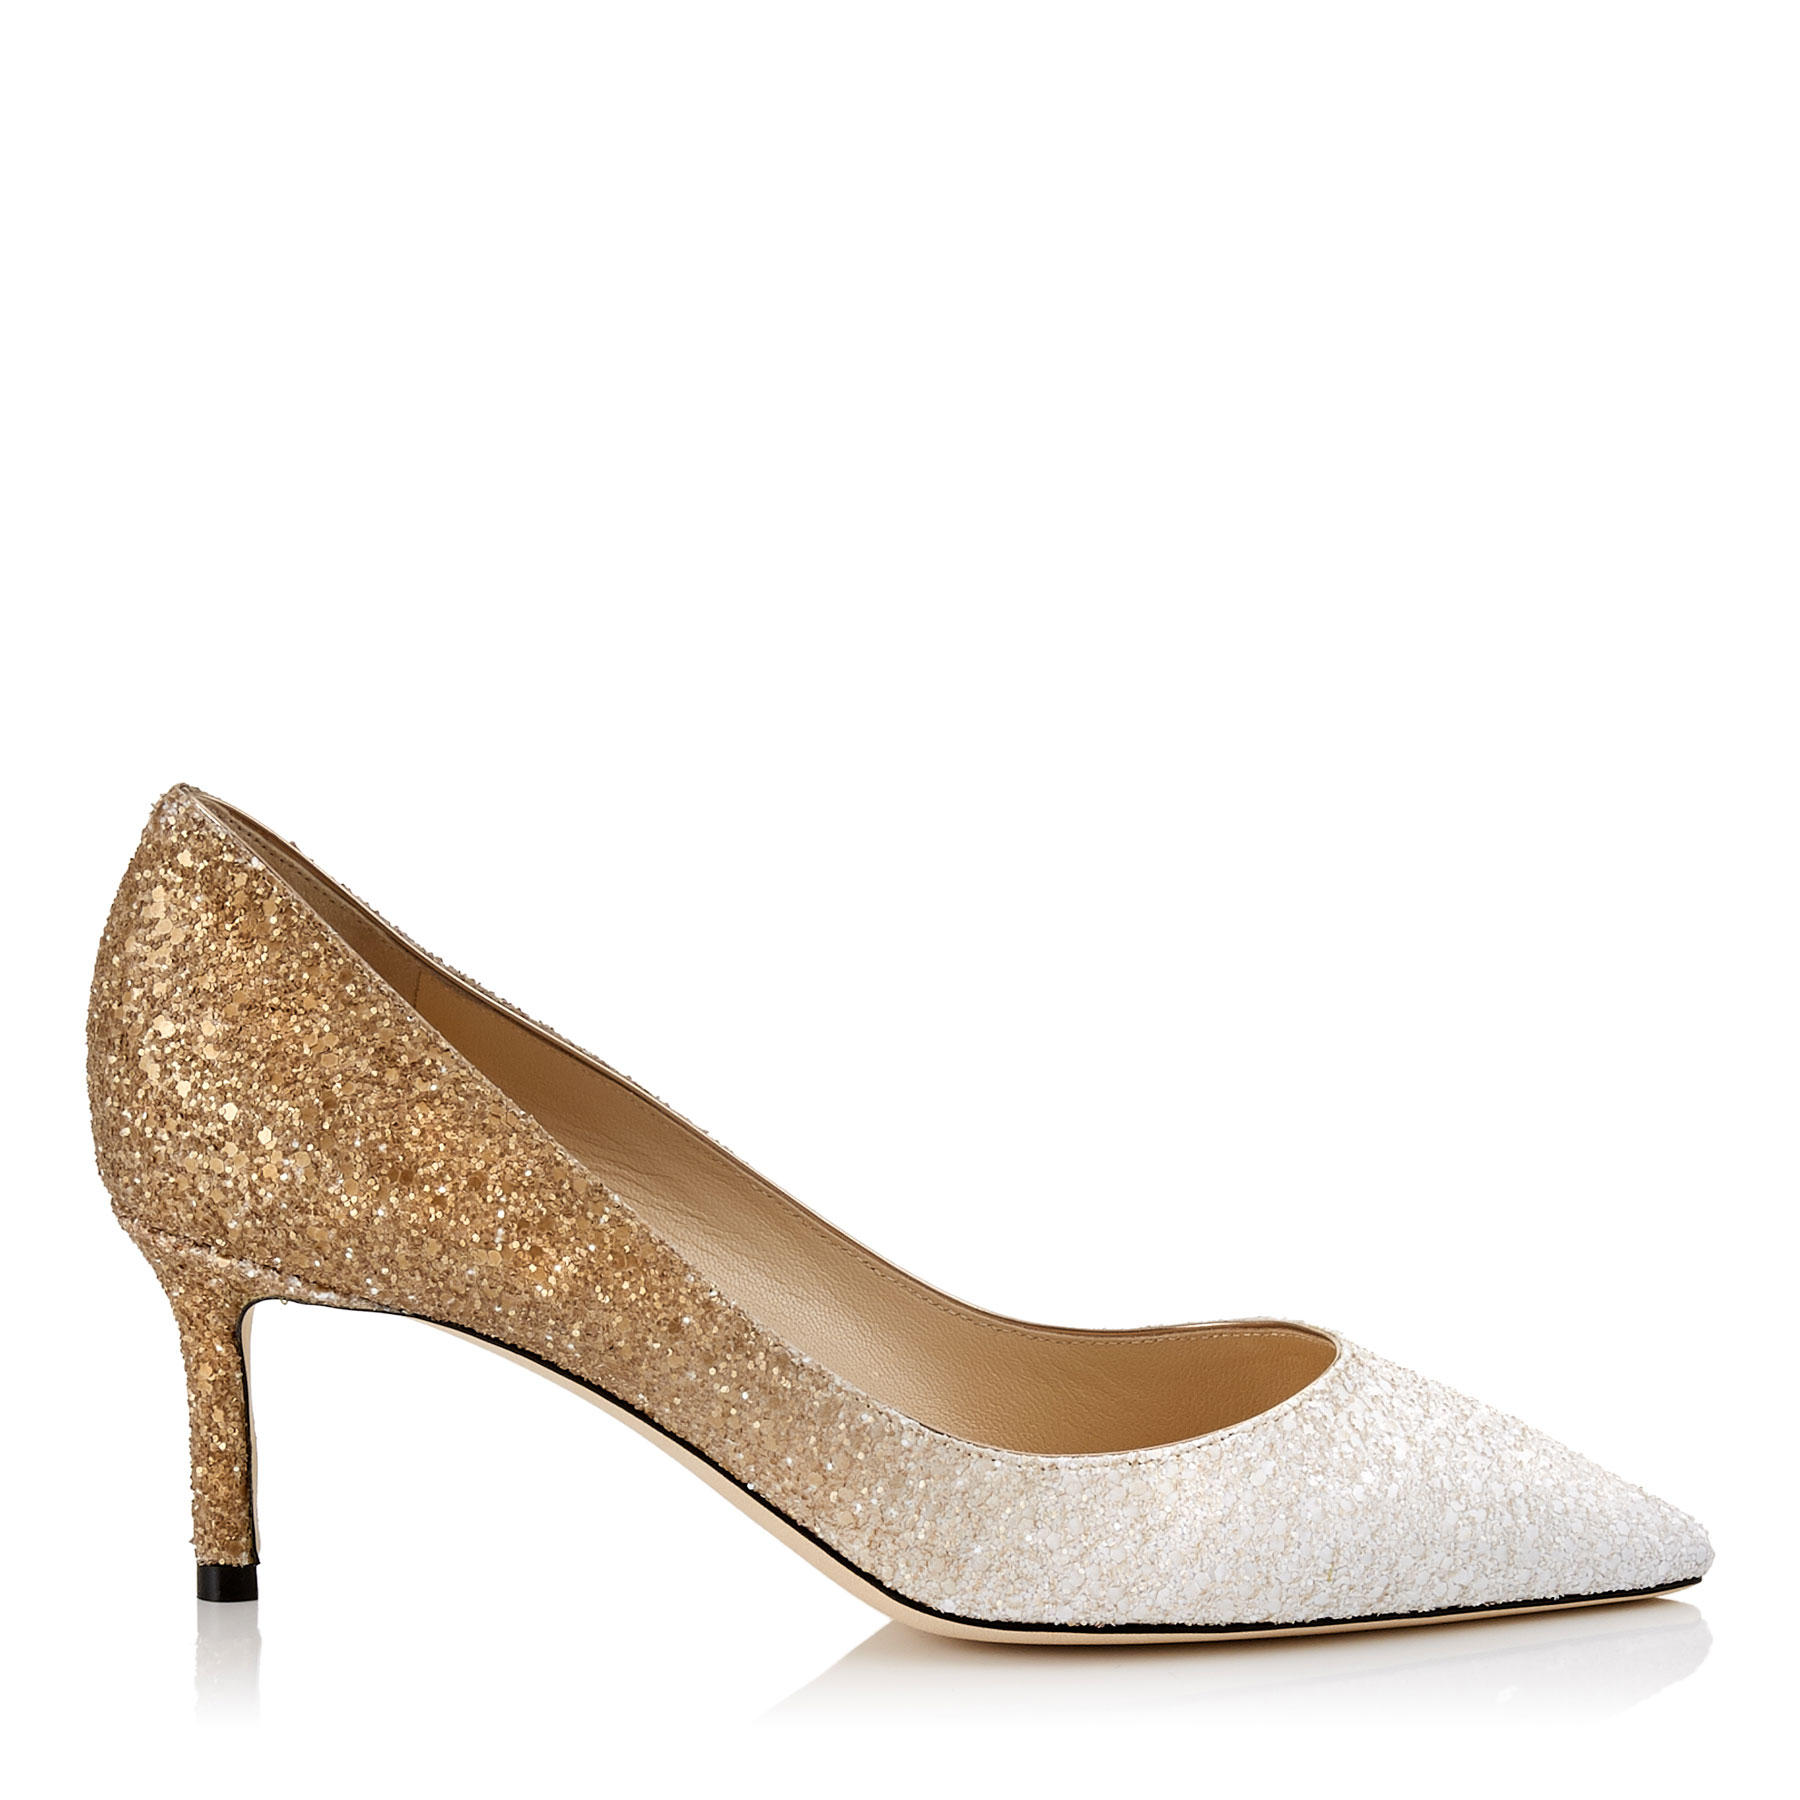 ROMY 60 White and Light Gold Coarse Glitter Dégradé Pointy Toe Pumps